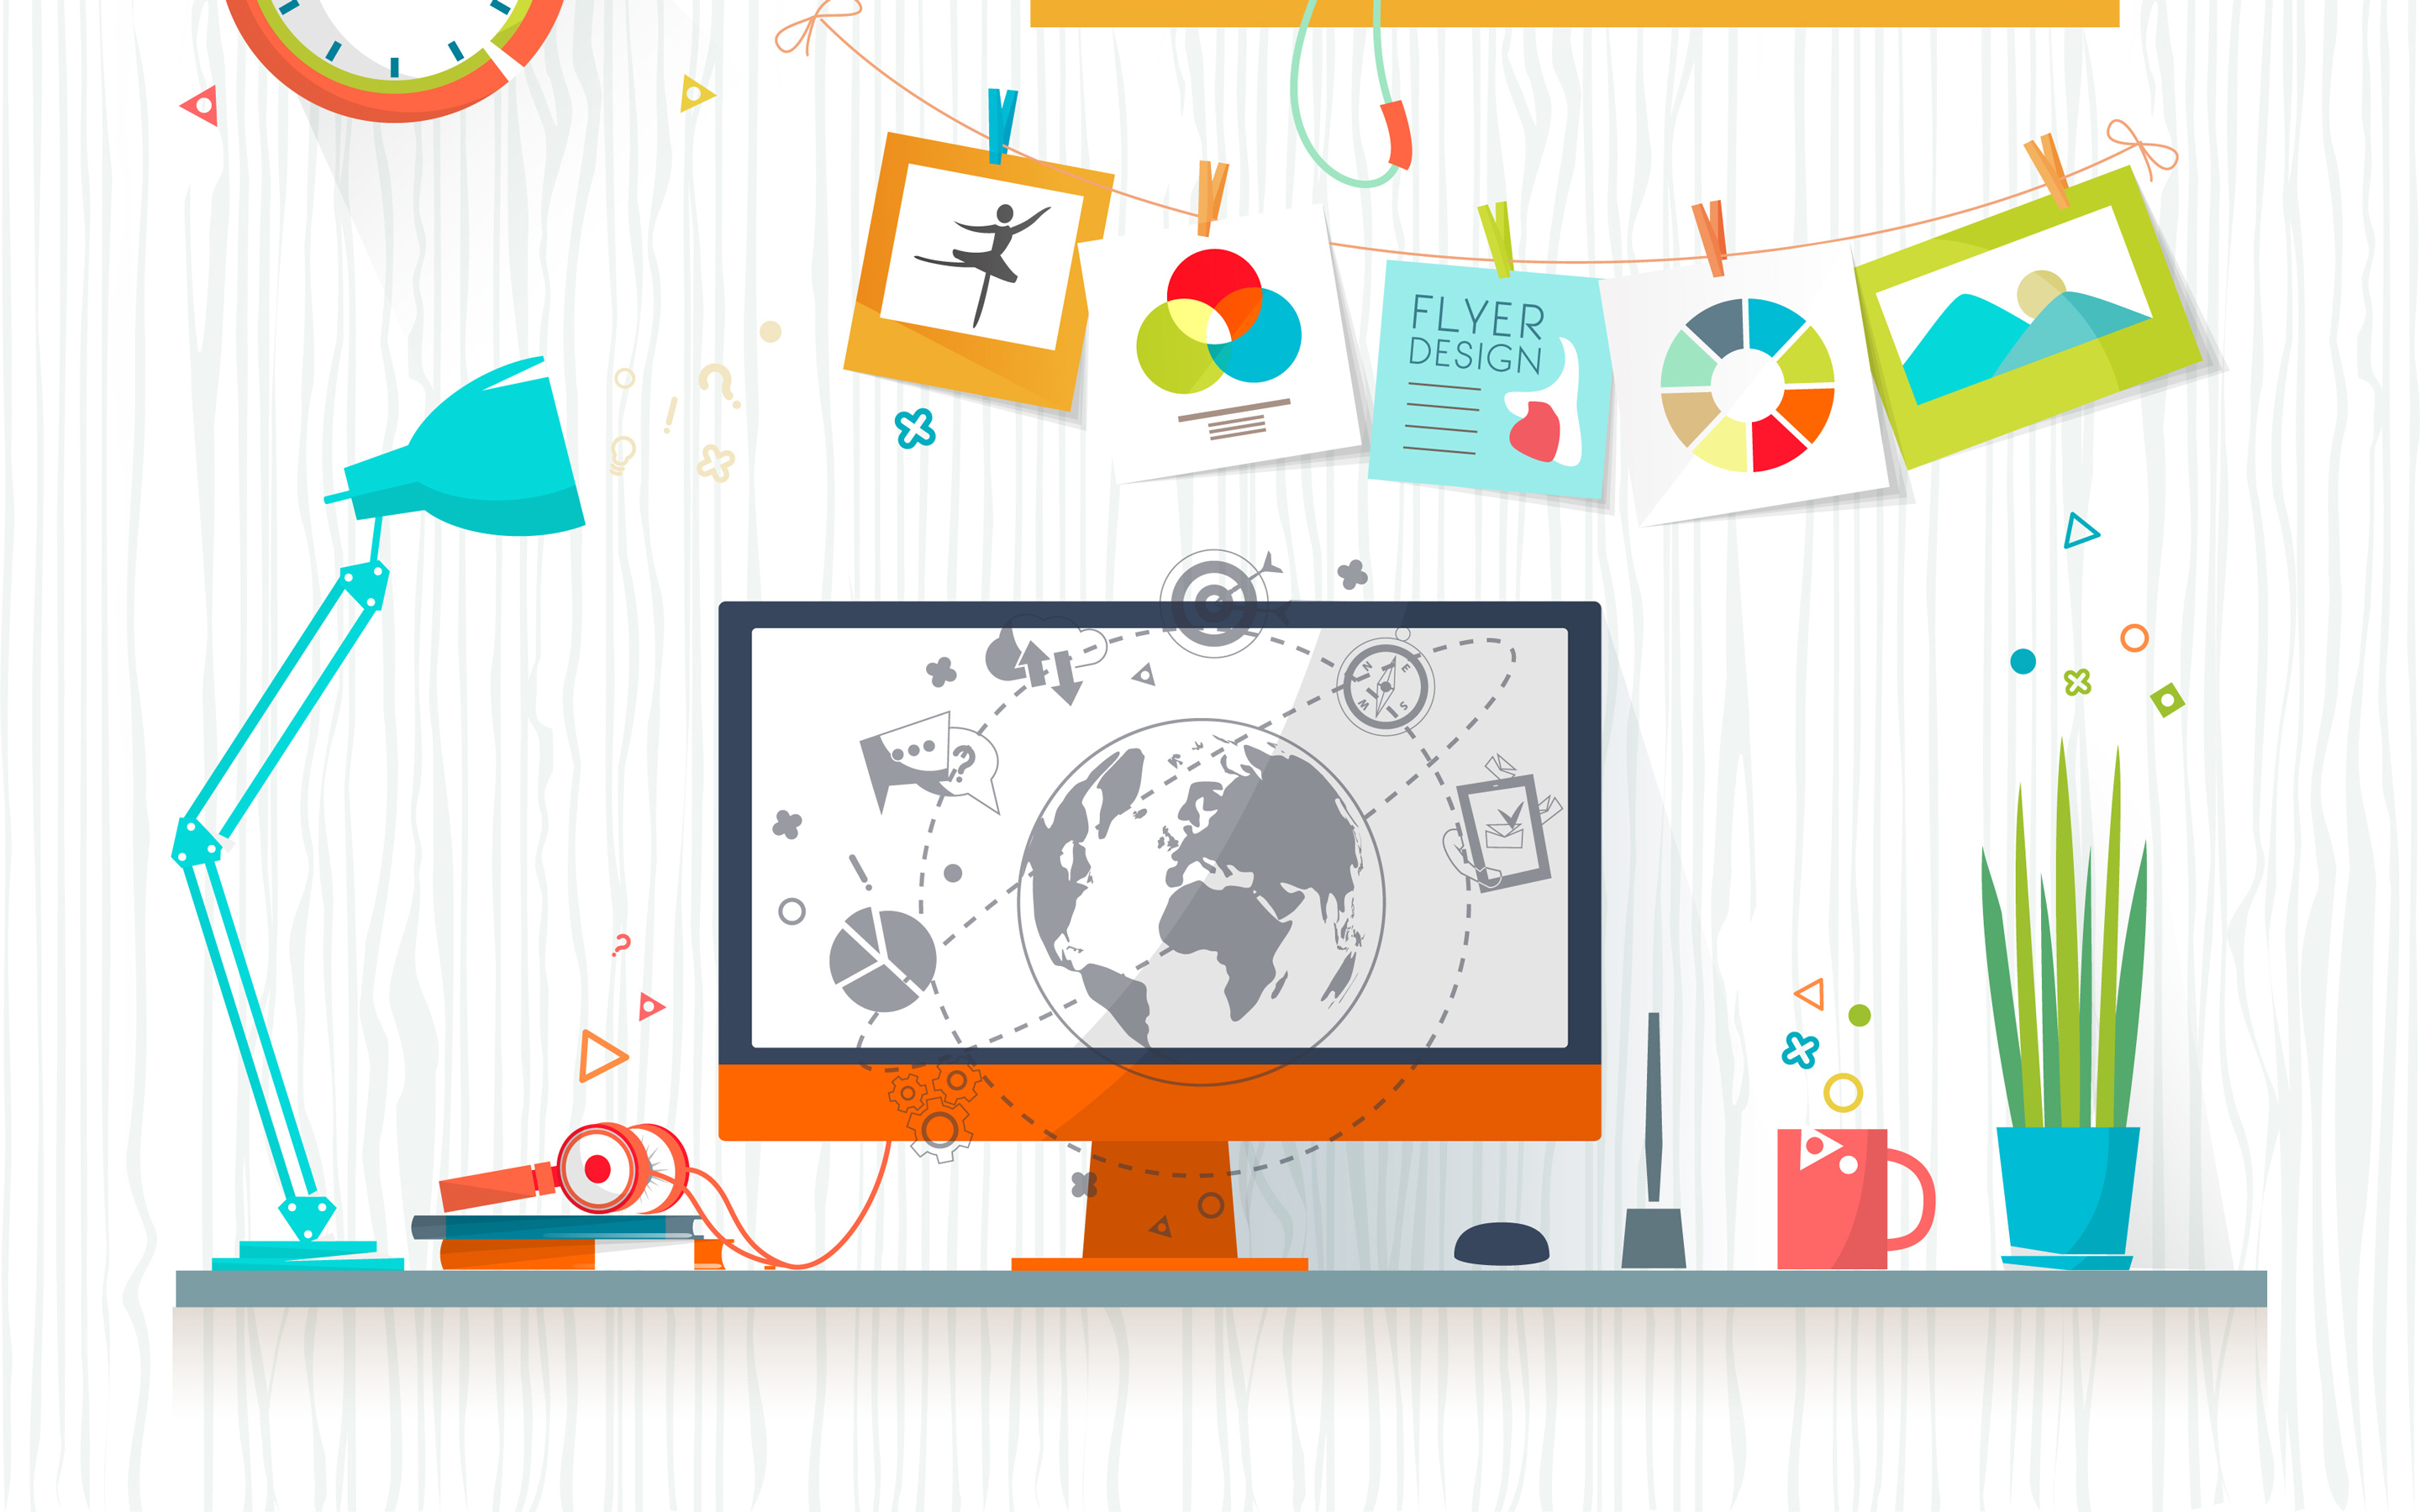 Top Design Blogs To Follow In 2017